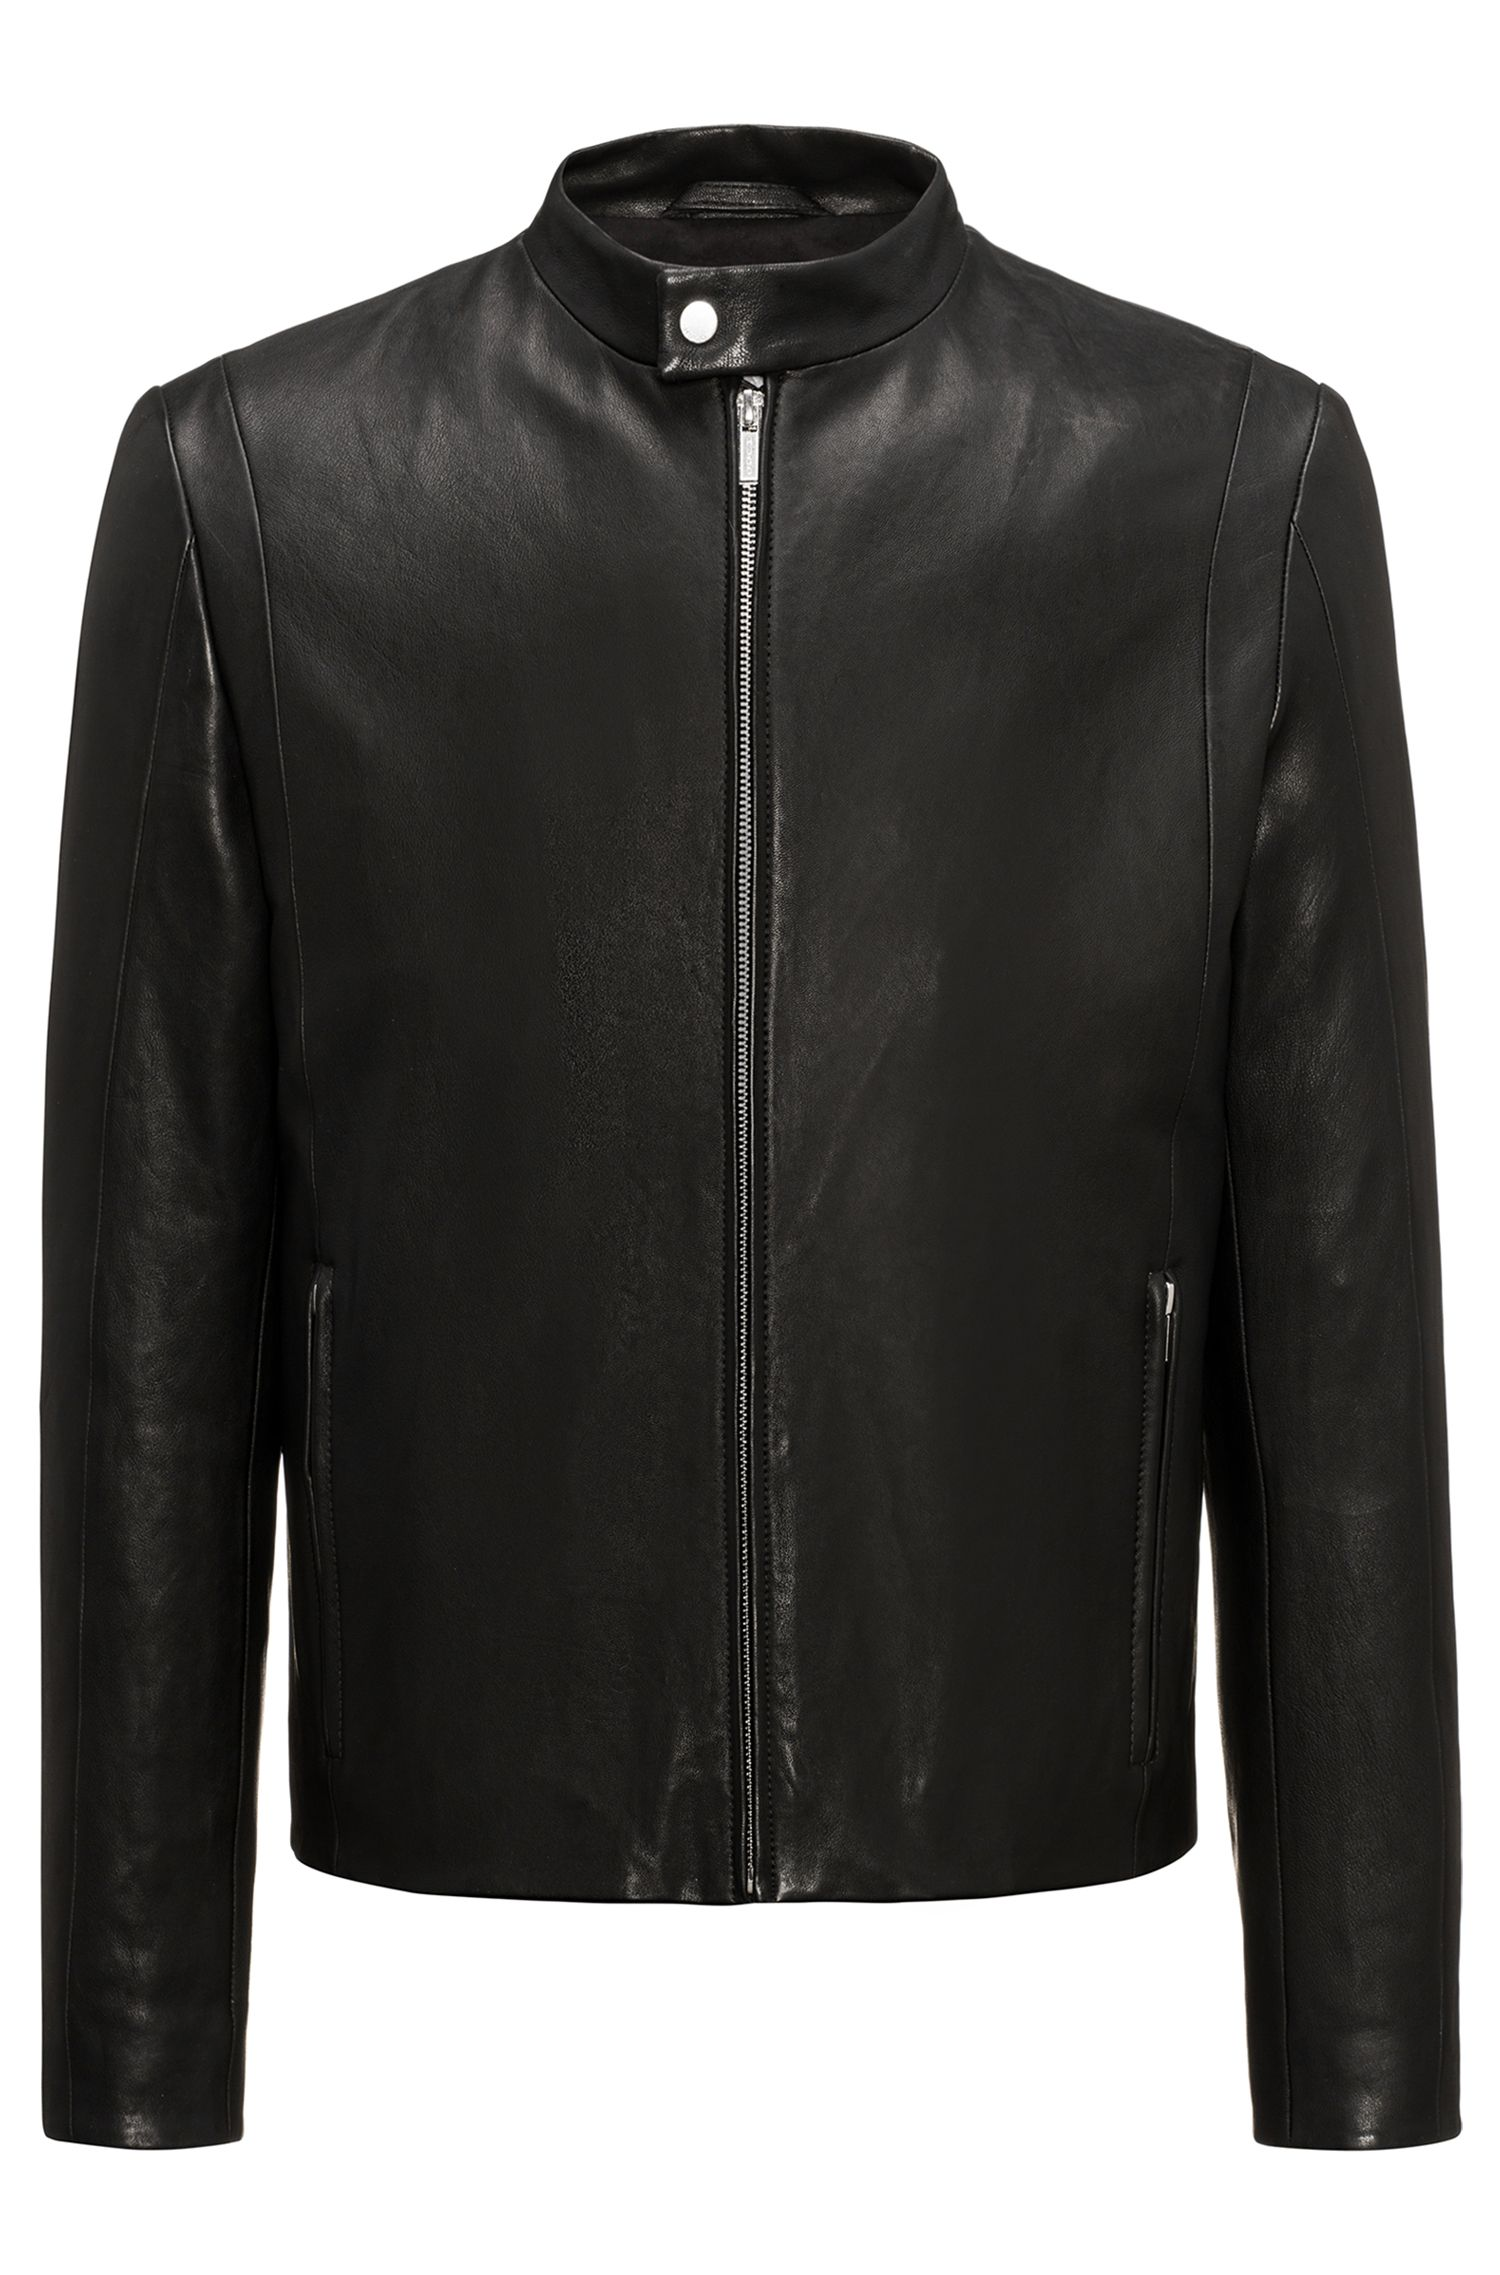 Streamlined lambskin nappa leather jacket in a slim fit